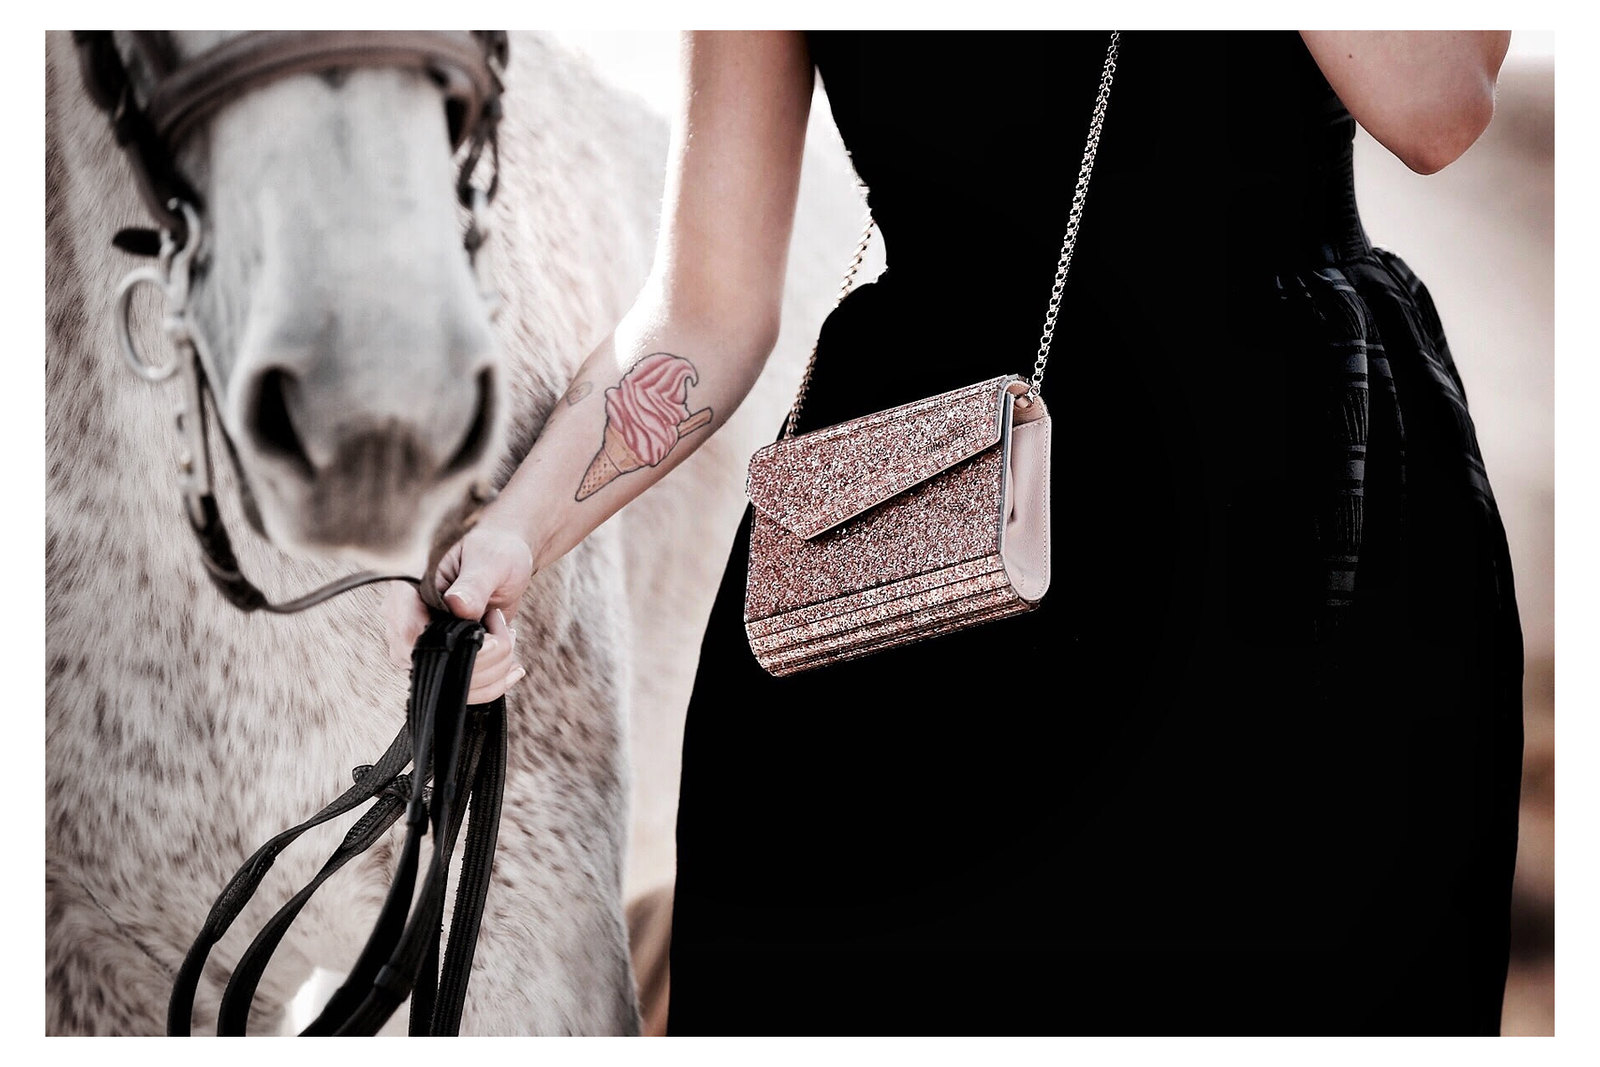 horse white desert jimmy choo glitter bag maje black cocktail dress cowgirl riding adventure freedom outfit ootd modeblogger breuninger fashionblog cats & dogs ricarda schernus düsseldorf 3